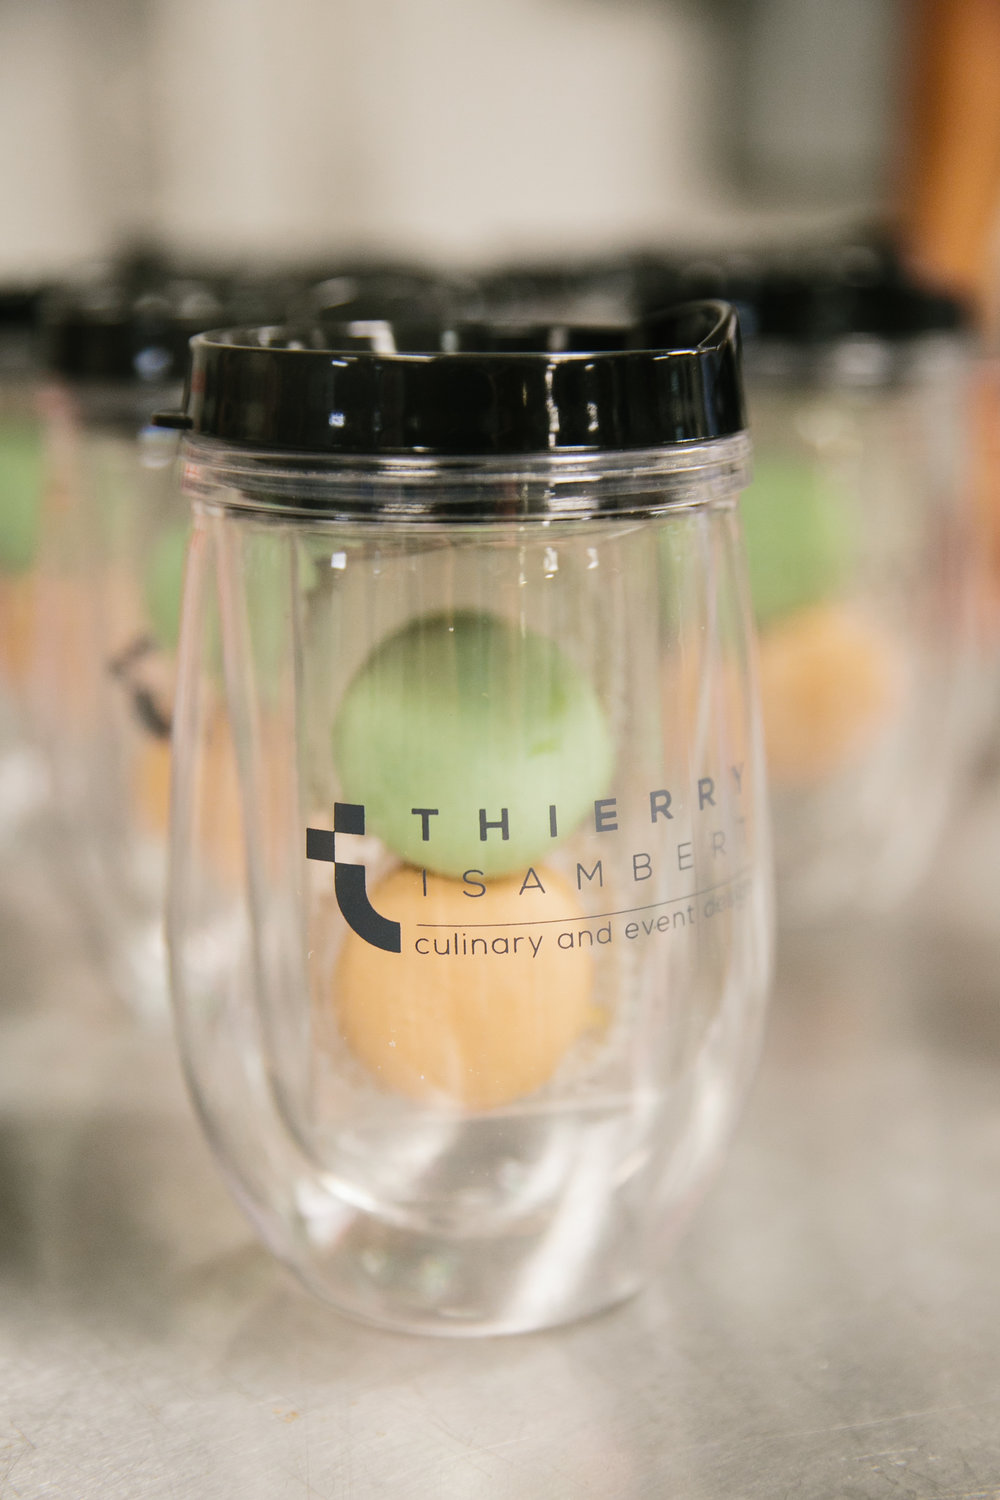 Party Favors from Thierry Isambert - Hot / Cold tumblers (BPA free)  and Macarons